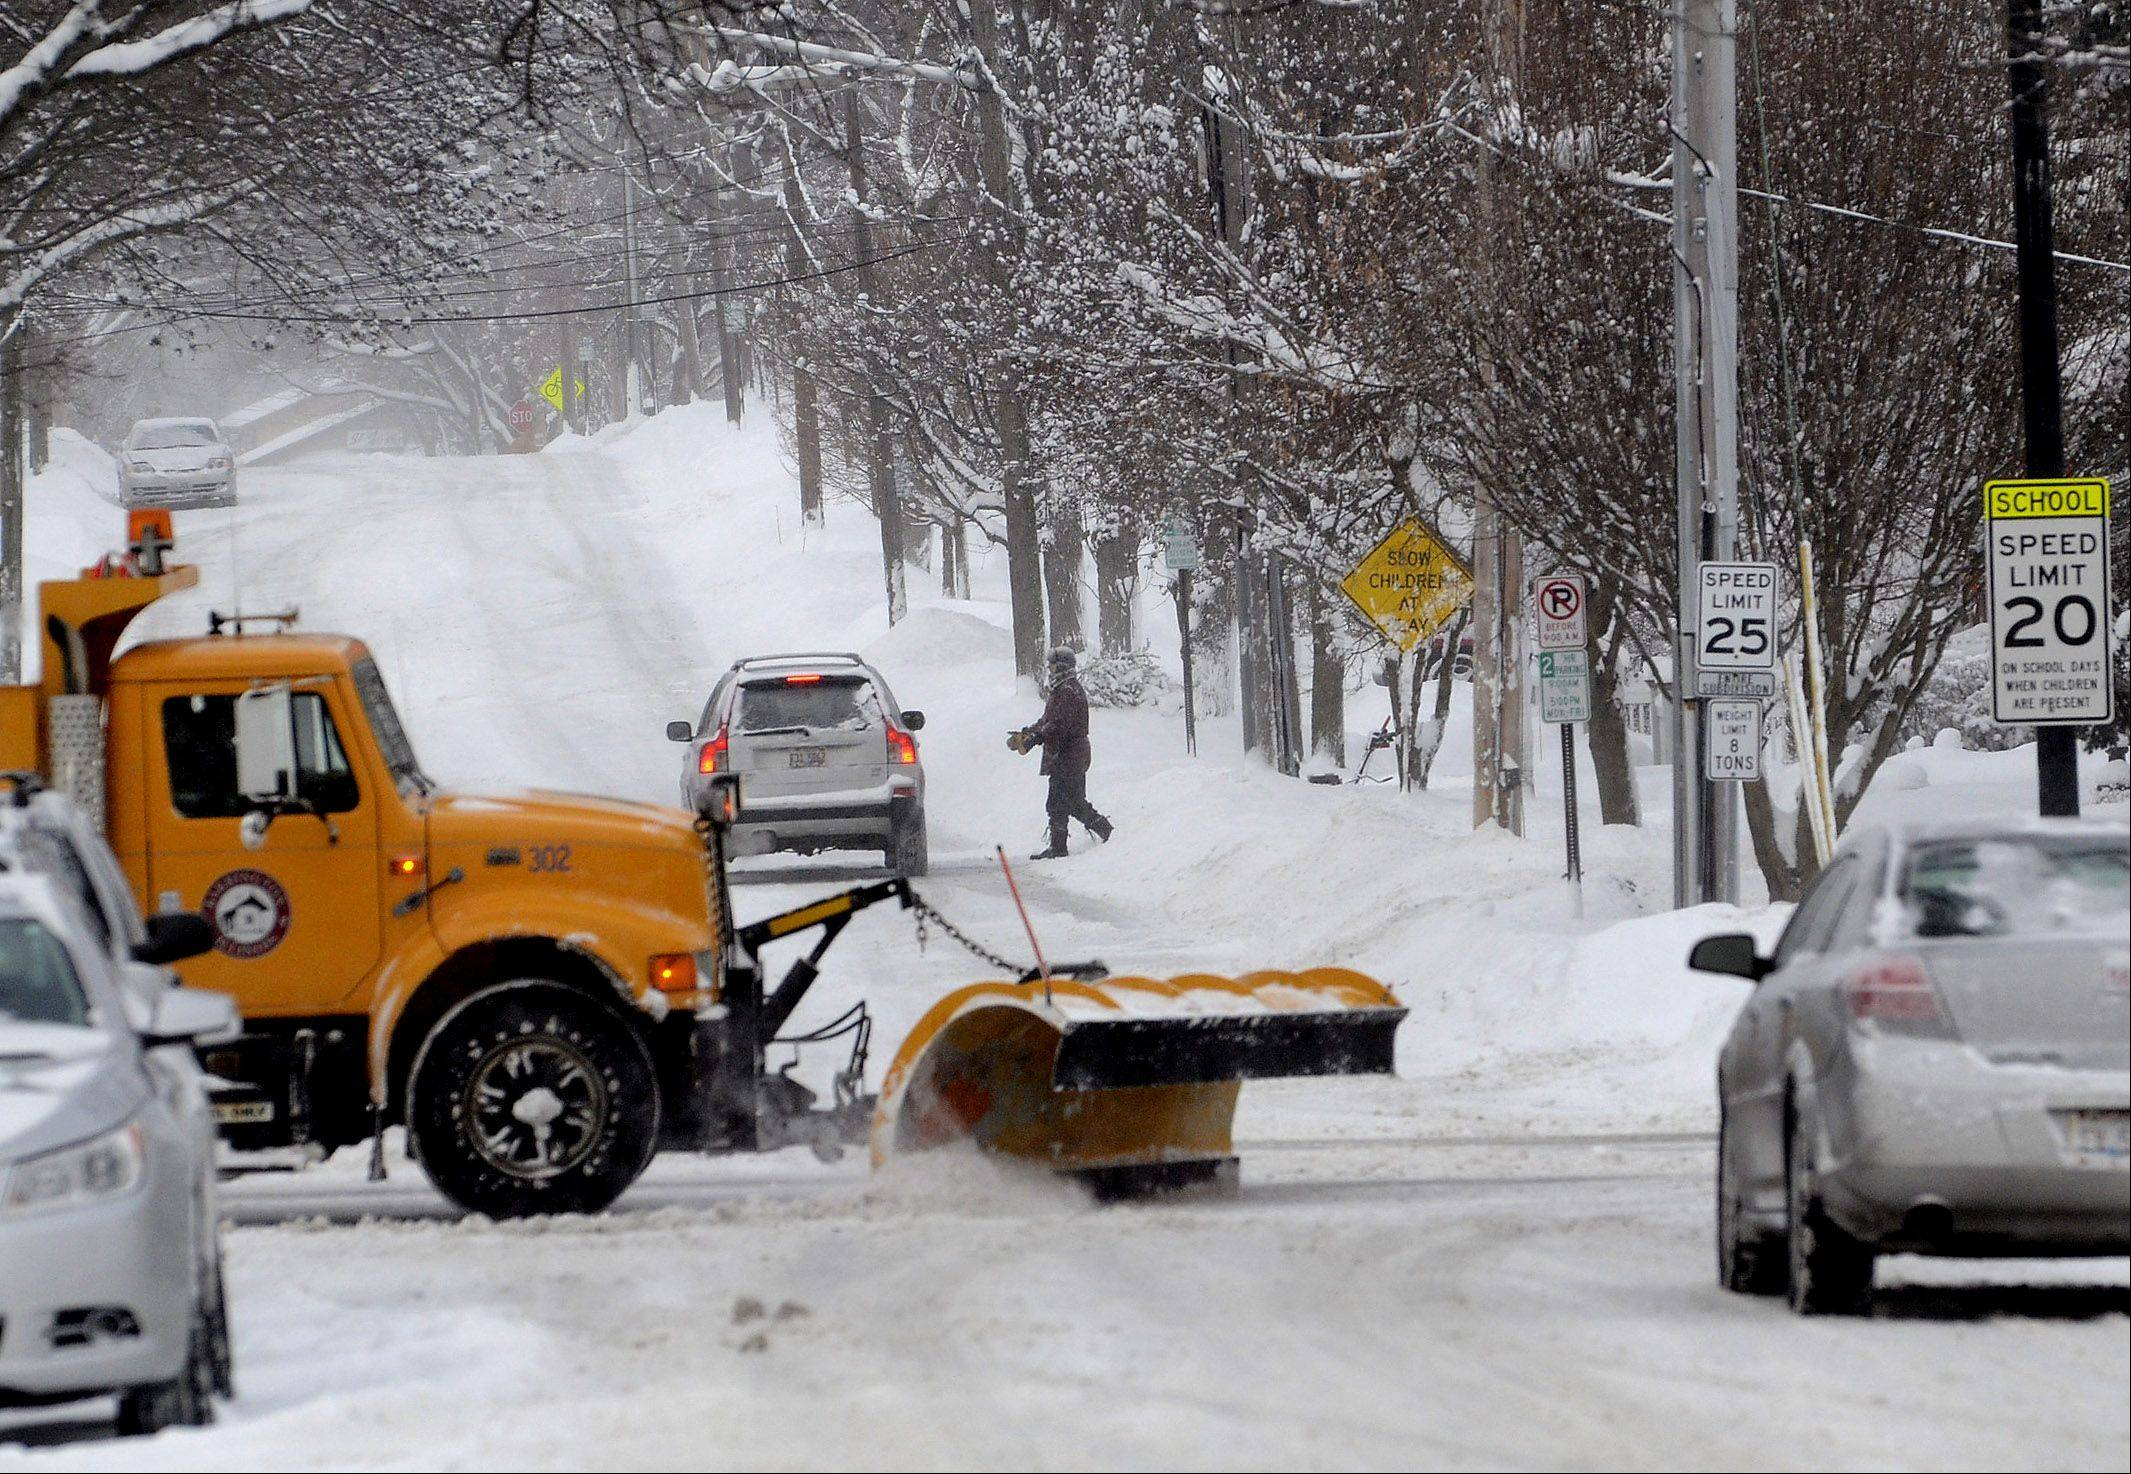 Plows continue to dig out downtown Barrington Thursday morning where more than 10 inches of snow fell.